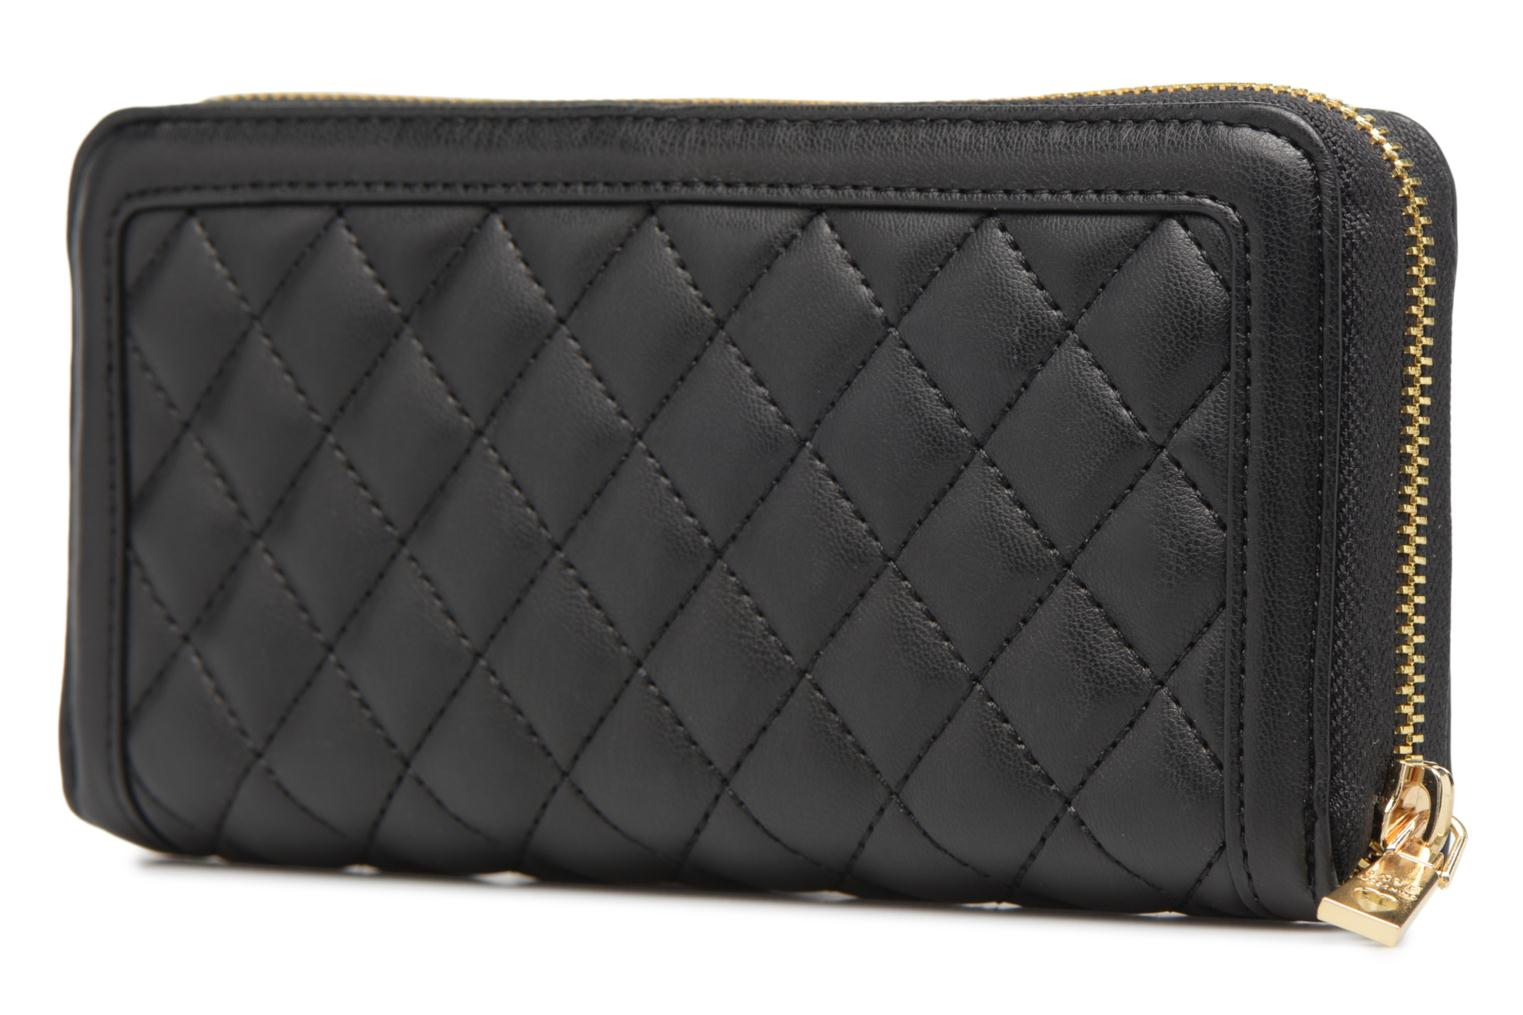 Portefeuille Super Quilted 000 Black